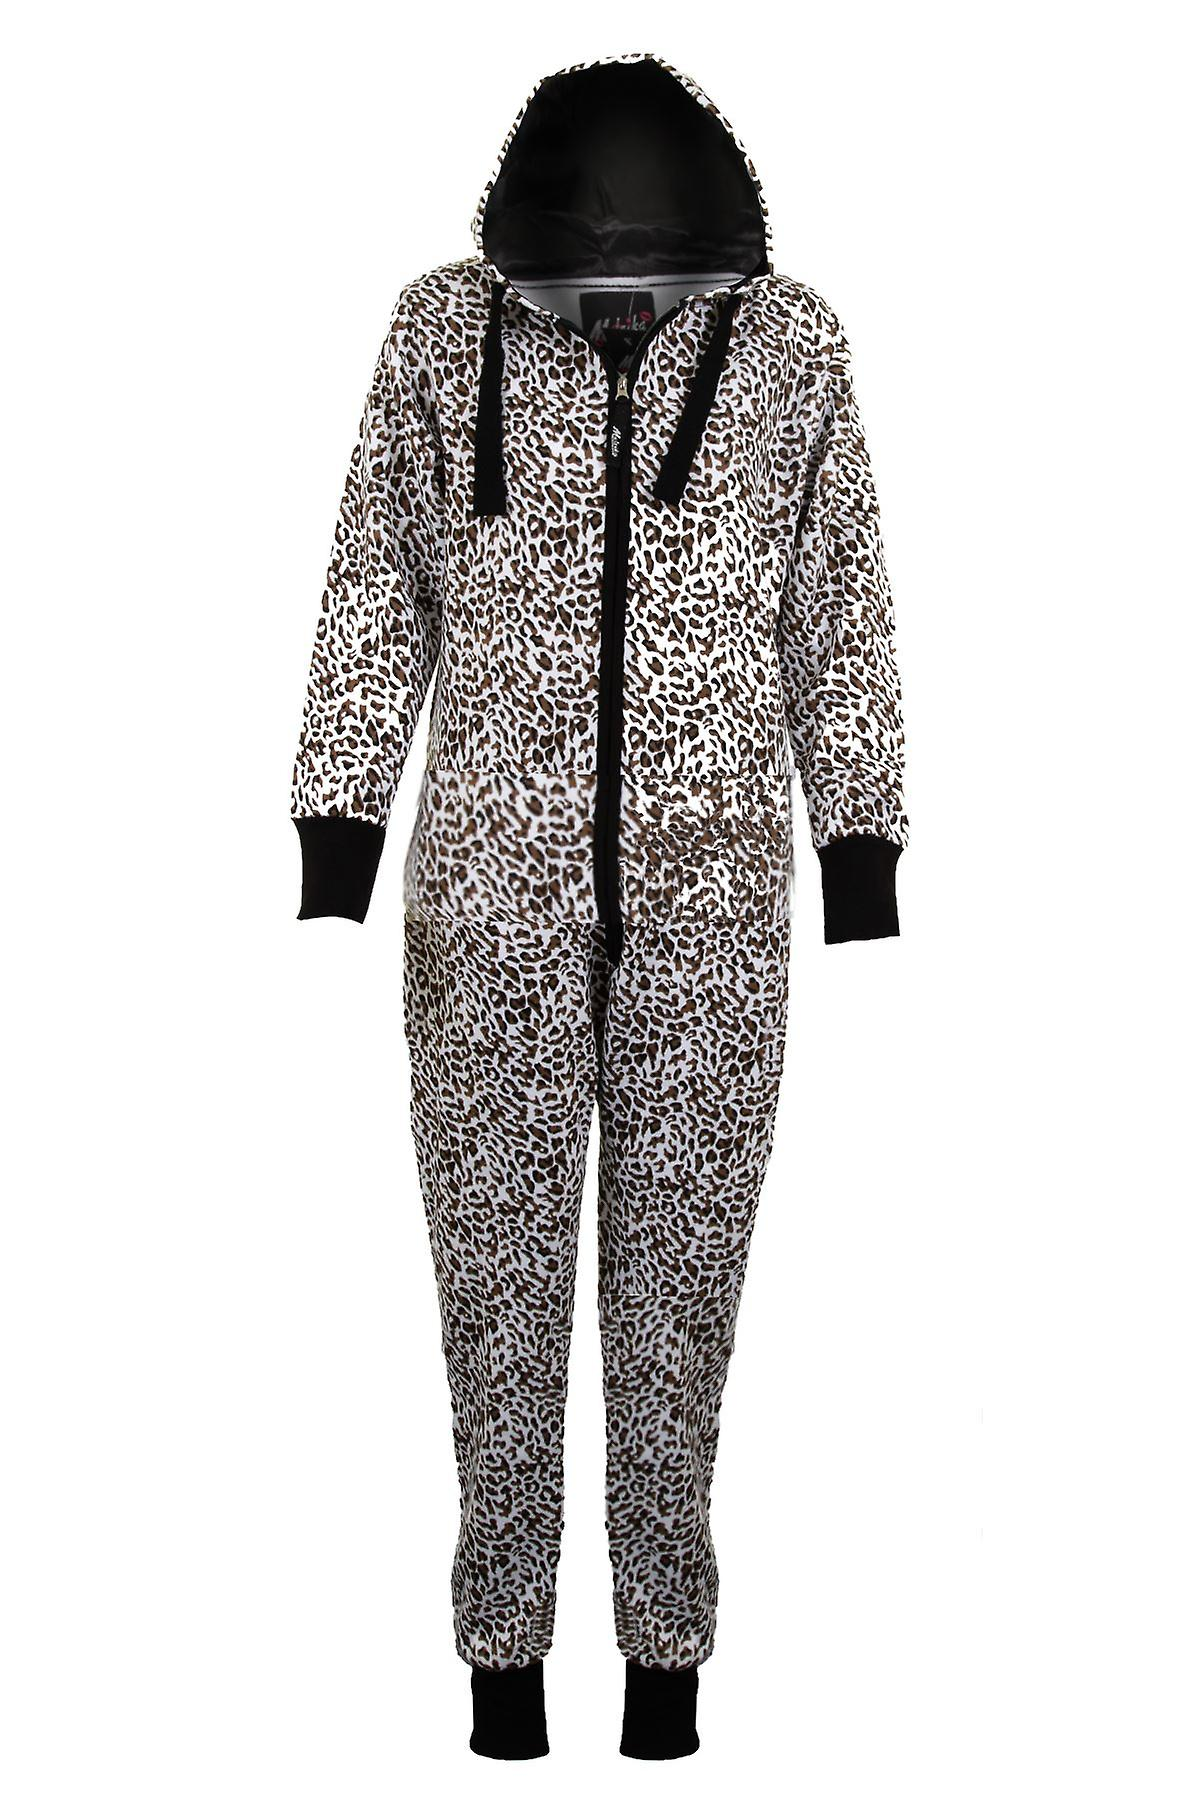 Ladies Hooded American Stars & Stripes Leopard Print Women's Jumpsuit All In One